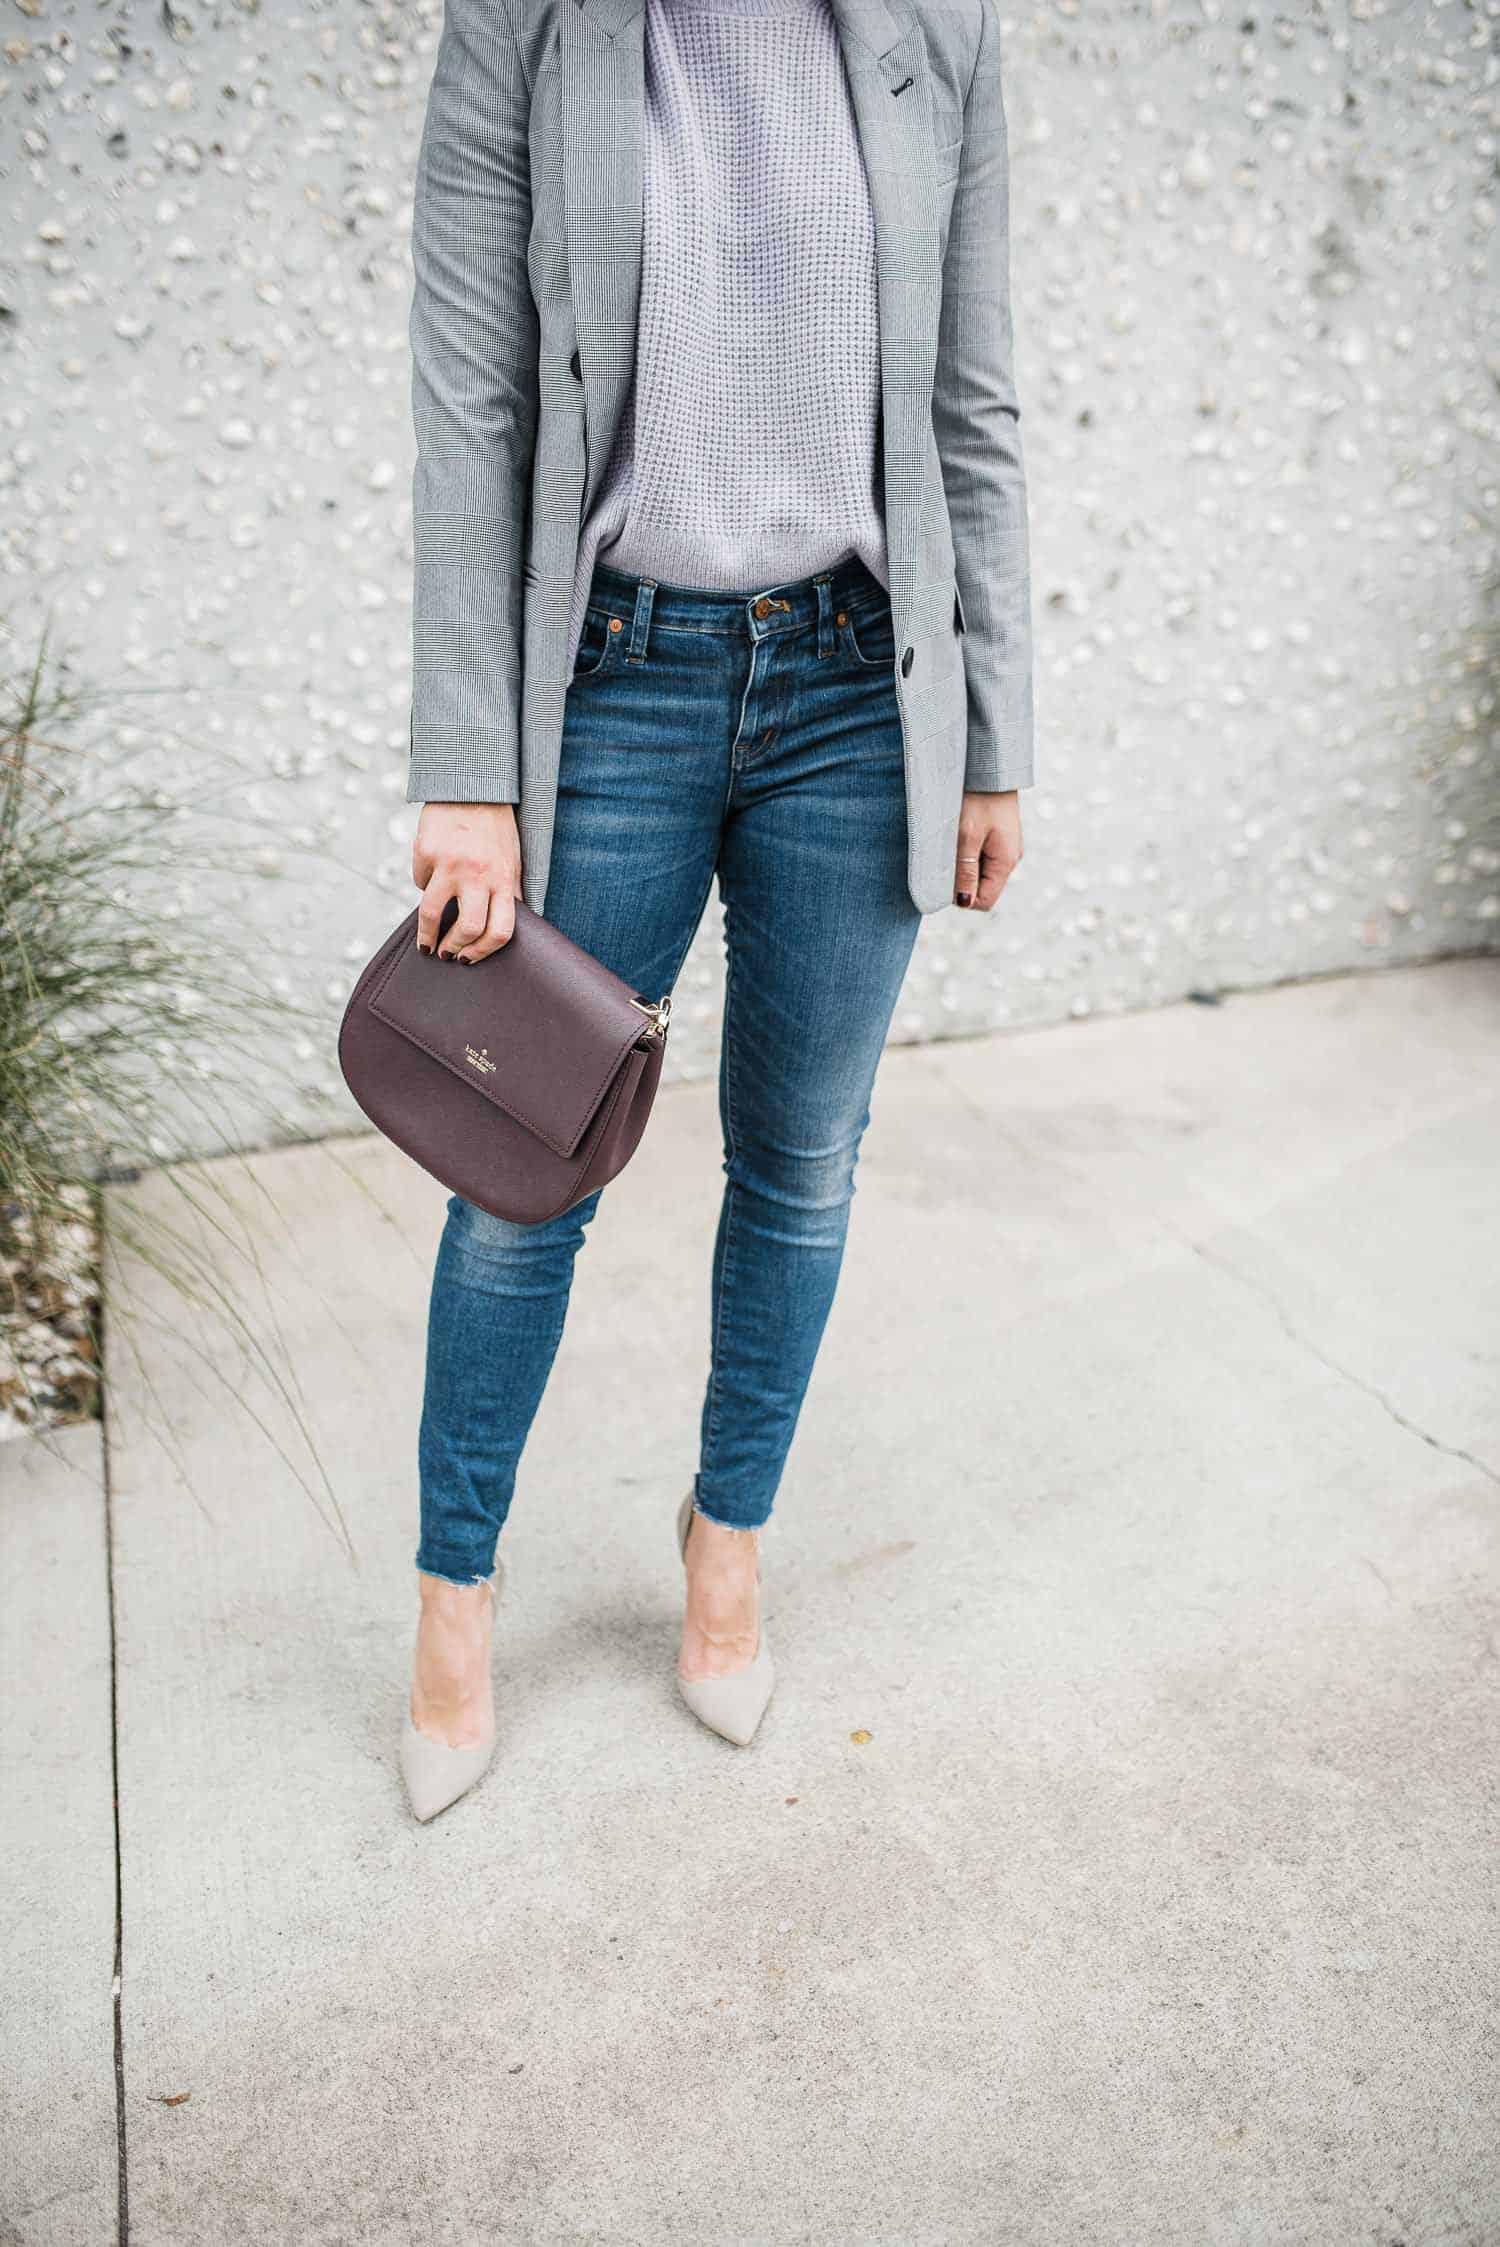 Express Blazer - Everlane Sweater - Schutz Heels - Kate Spade Bag